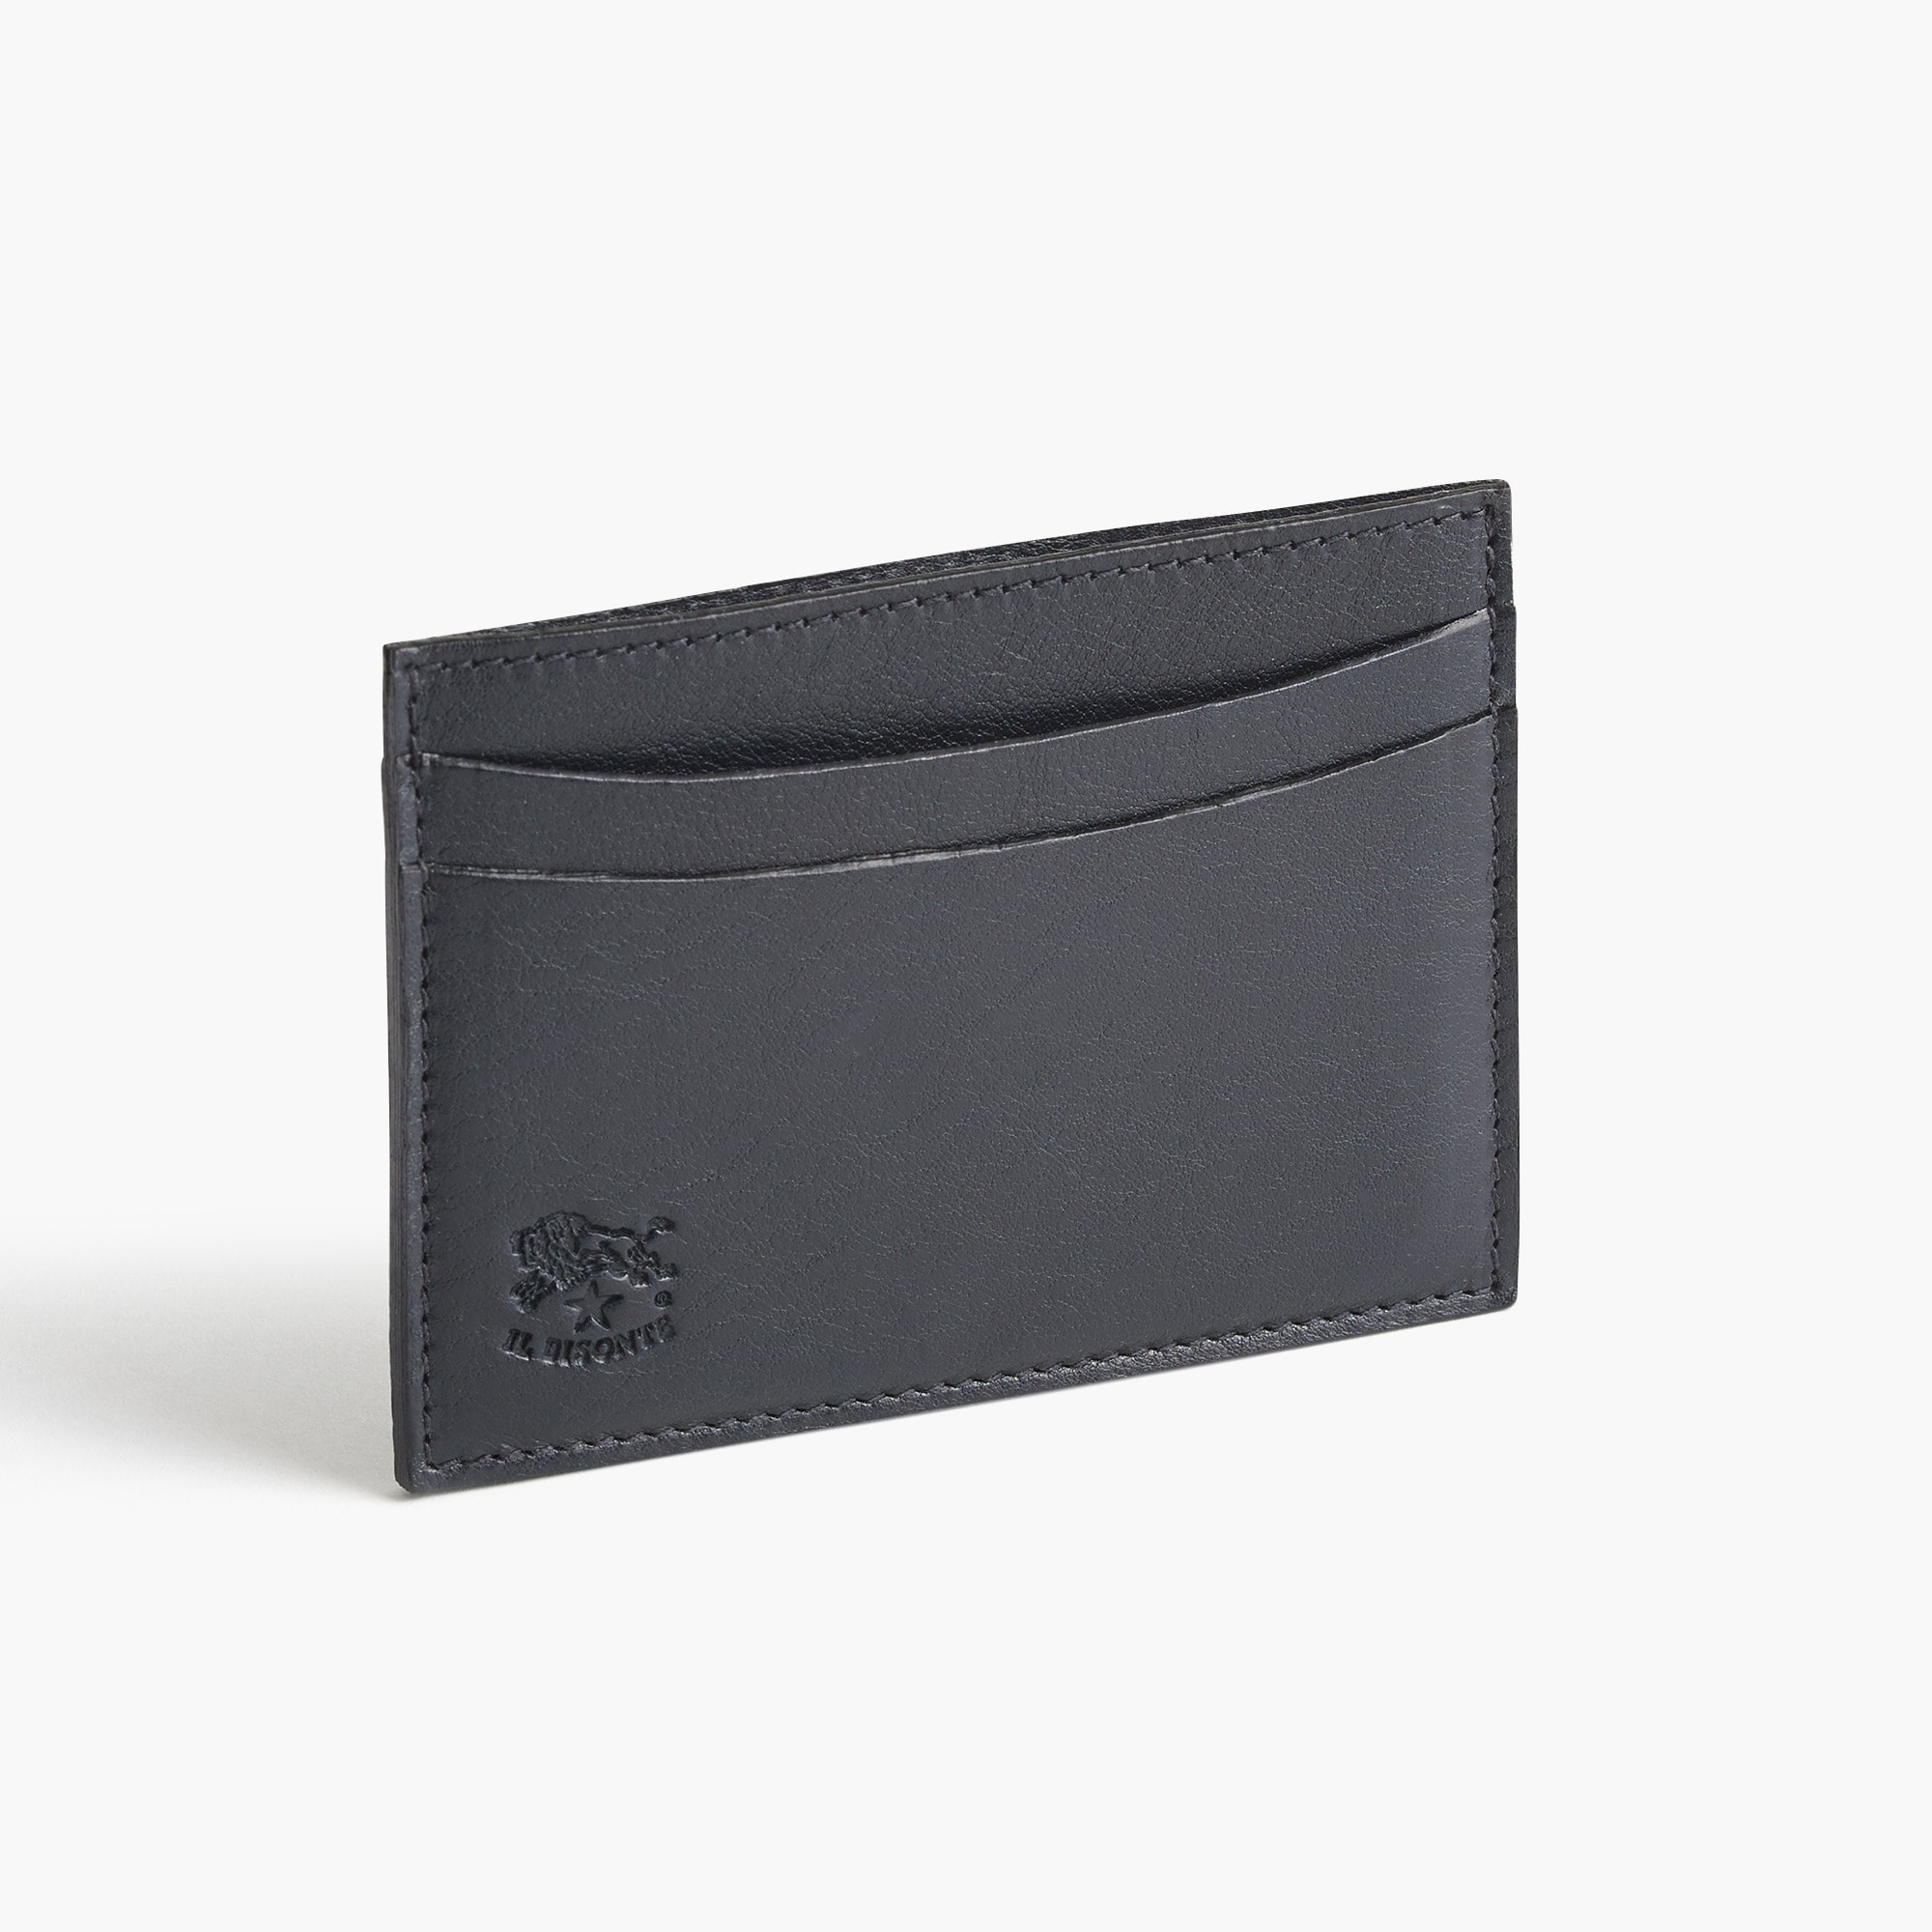 IL Bisonte® leather card case